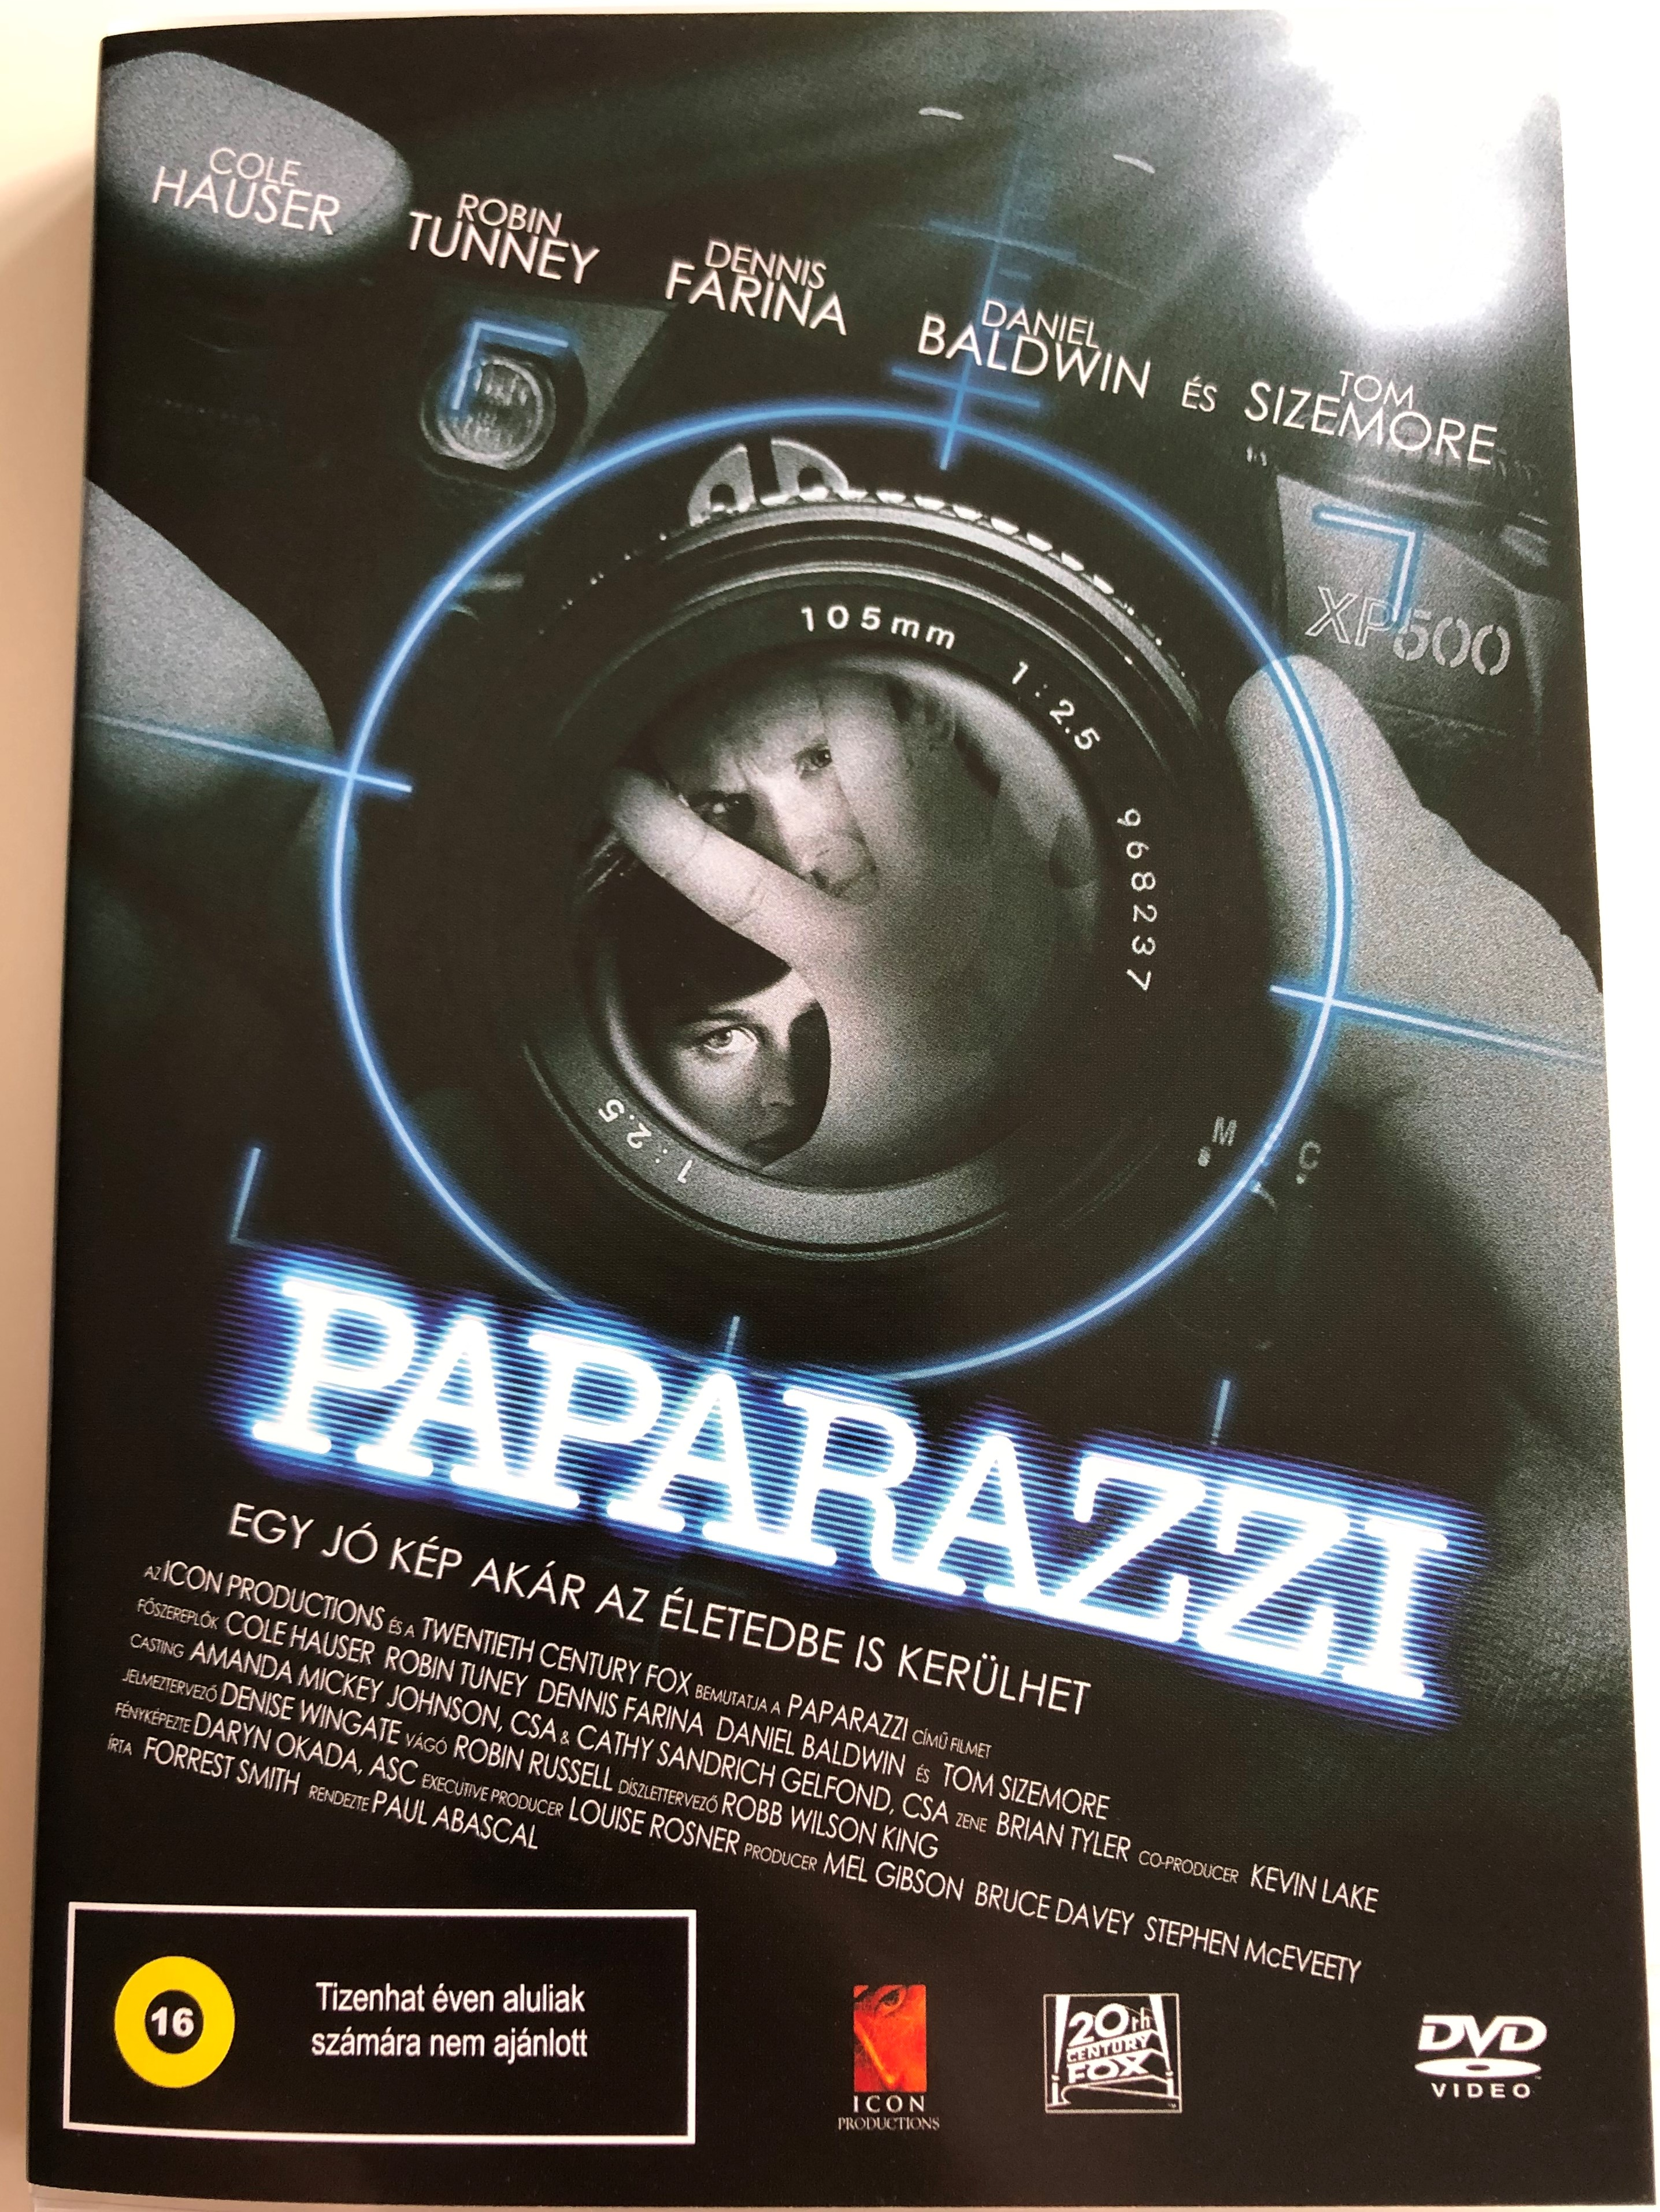 paparazzi-dvd-2004-directed-by-paul-abascal-starring-cole-hauser-robin-tunney-dennis-farina-daniel-baldwin-tom-sizemore-1-.jpg